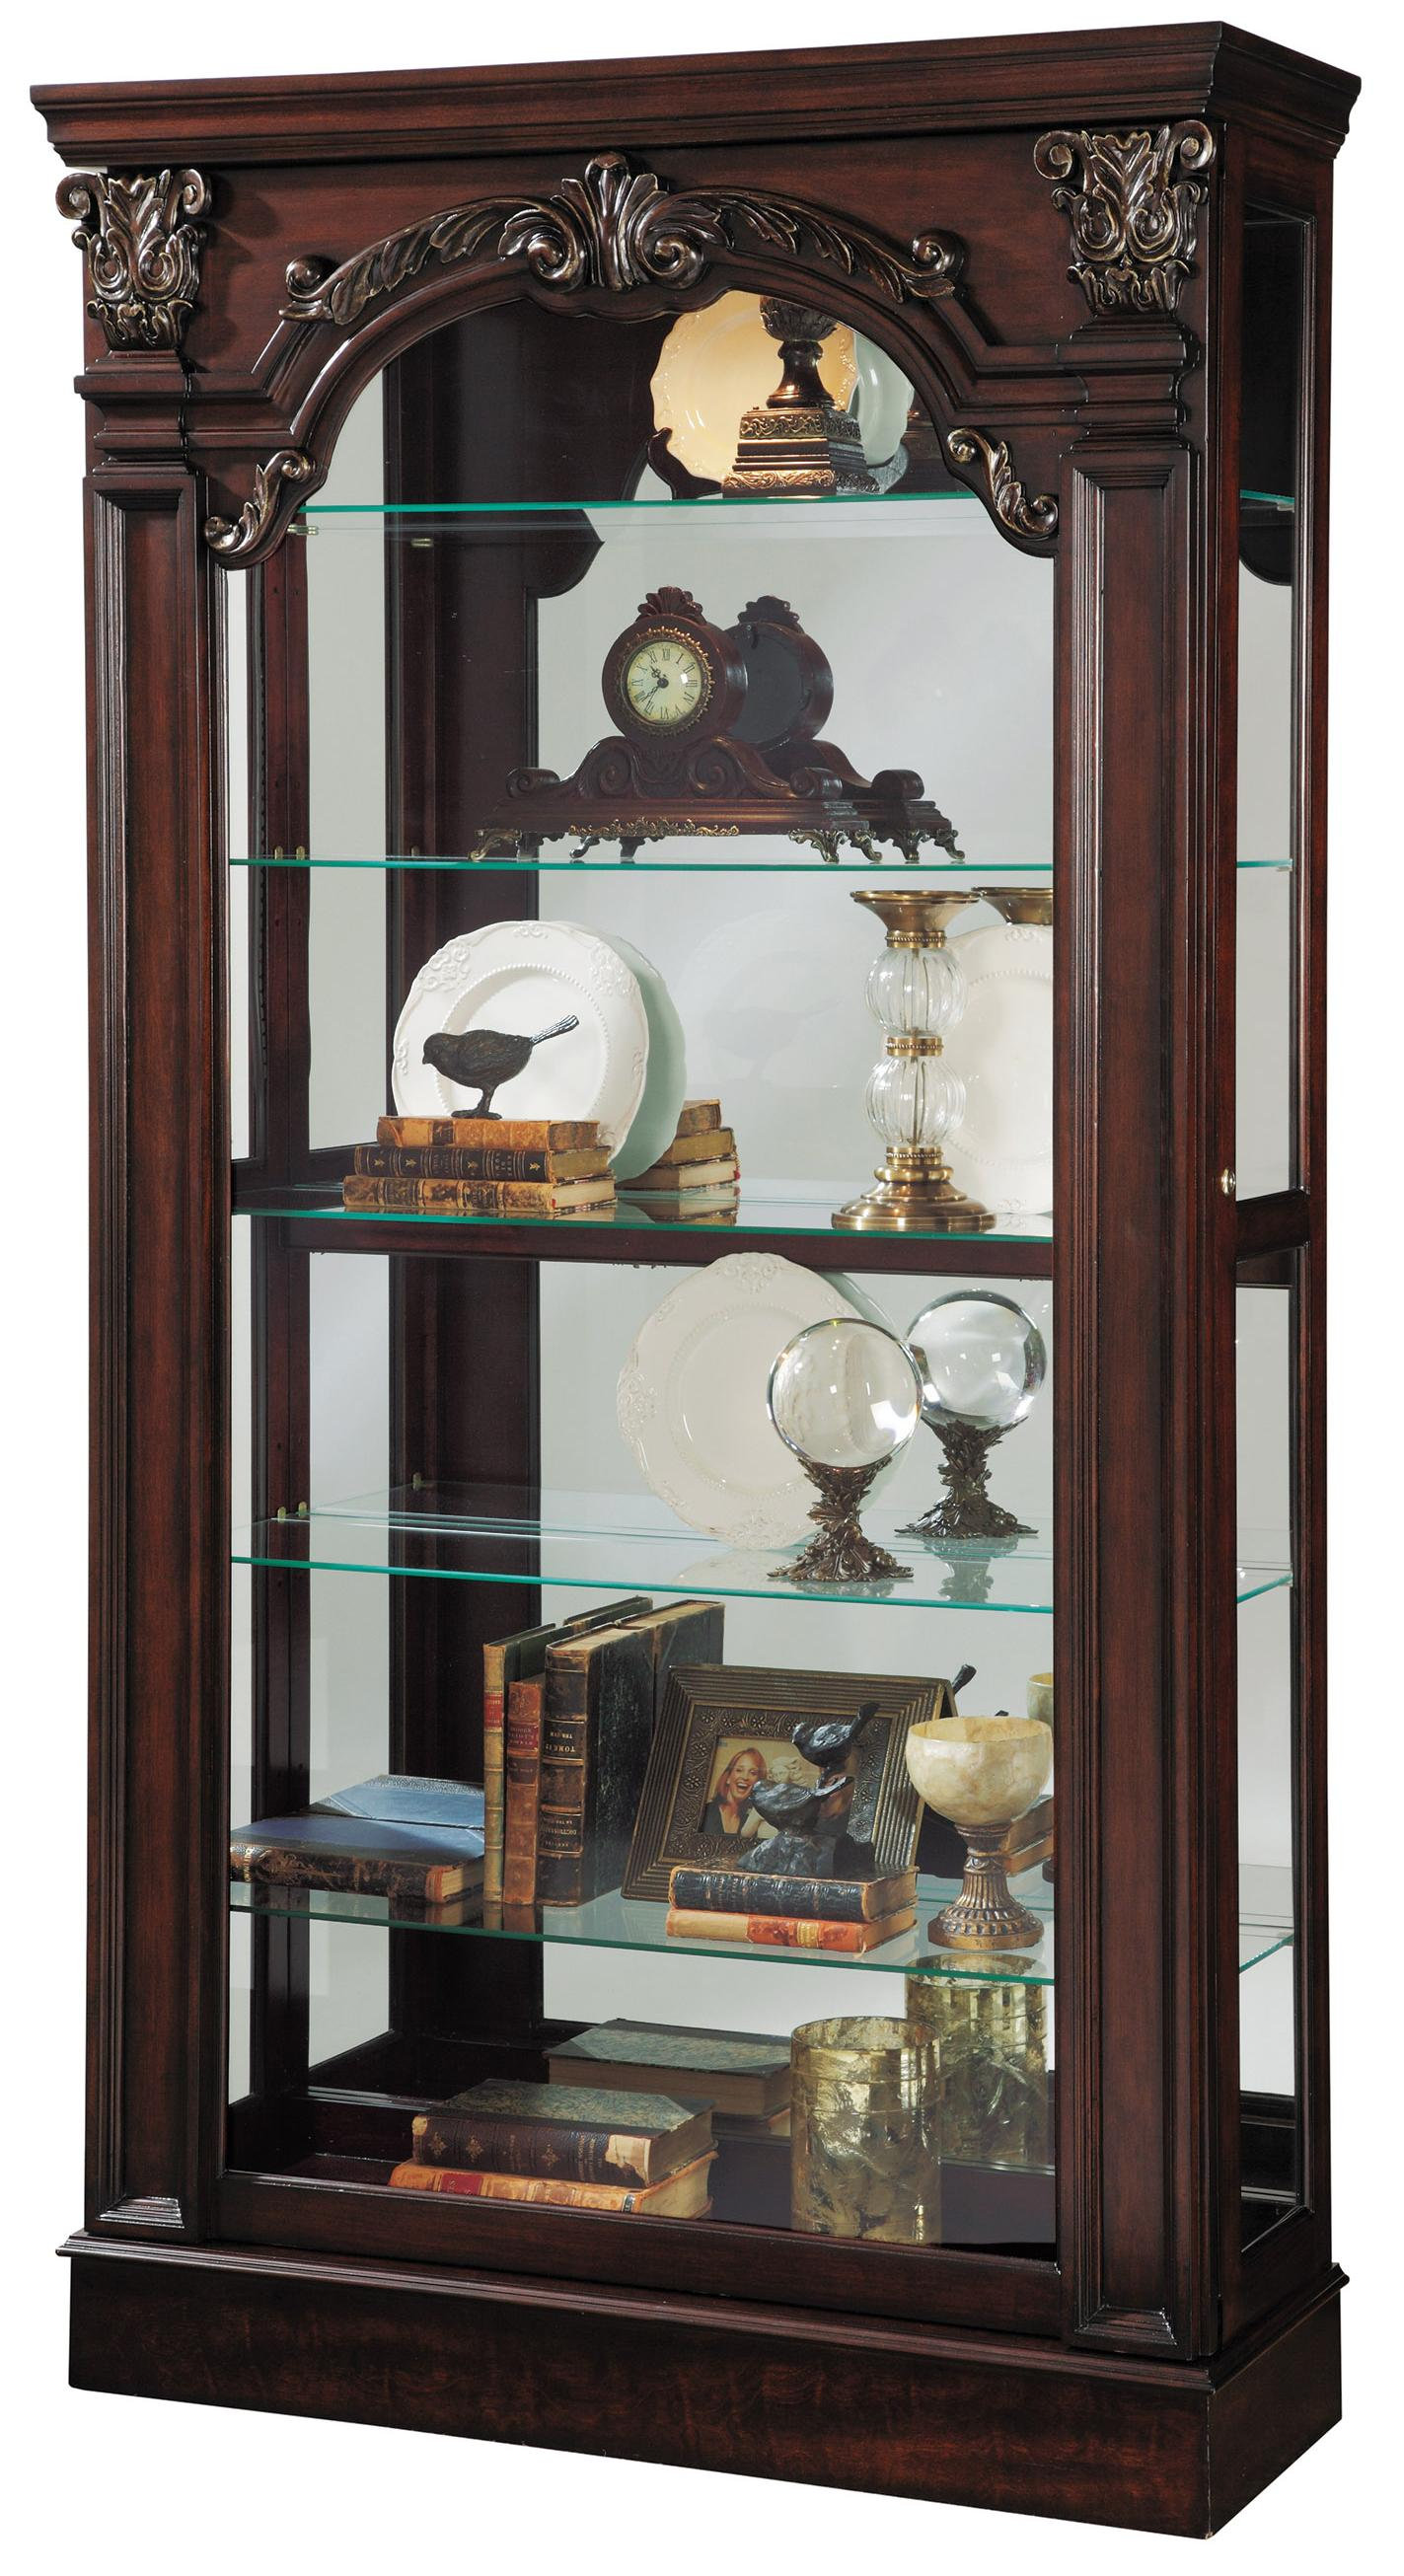 Pulaski Furniture Curios Traditional Style Sliding Front Curio - Item Number: 21432